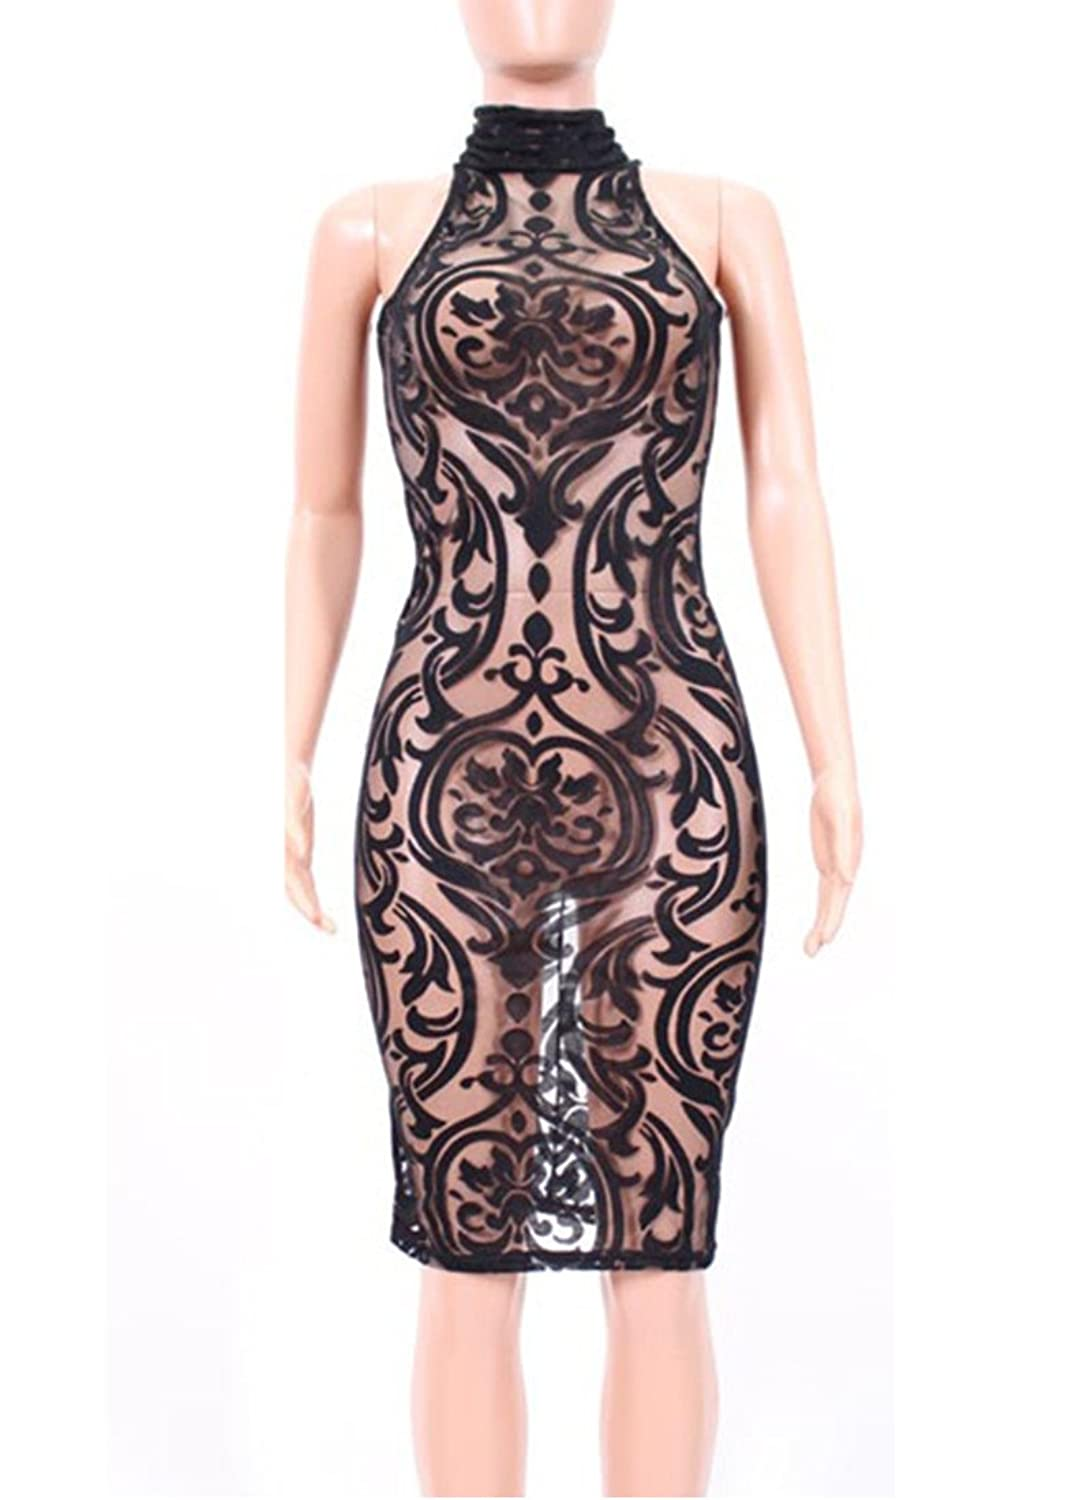 Women Sexy Sleeveless Floral Mesh Nude See Through Clubwear Bodycon Party Dress